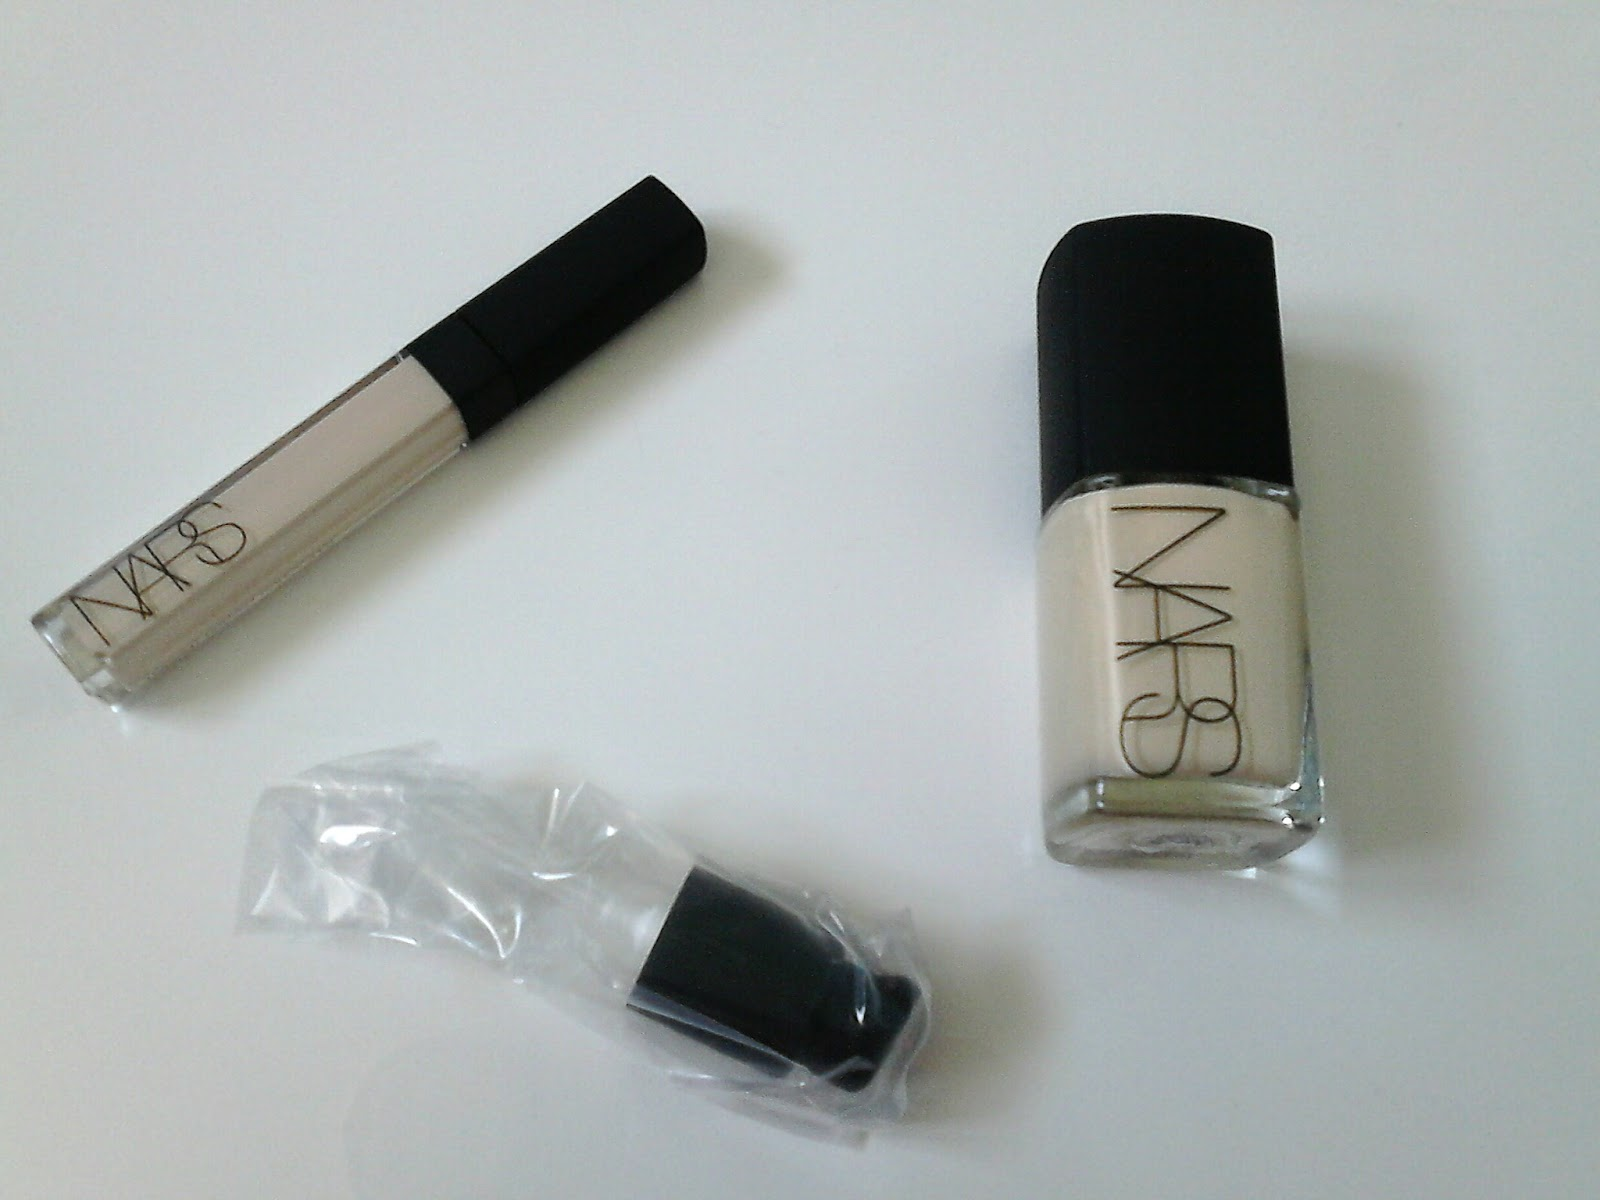 Nars Sheer Glow and Creamy Concealer